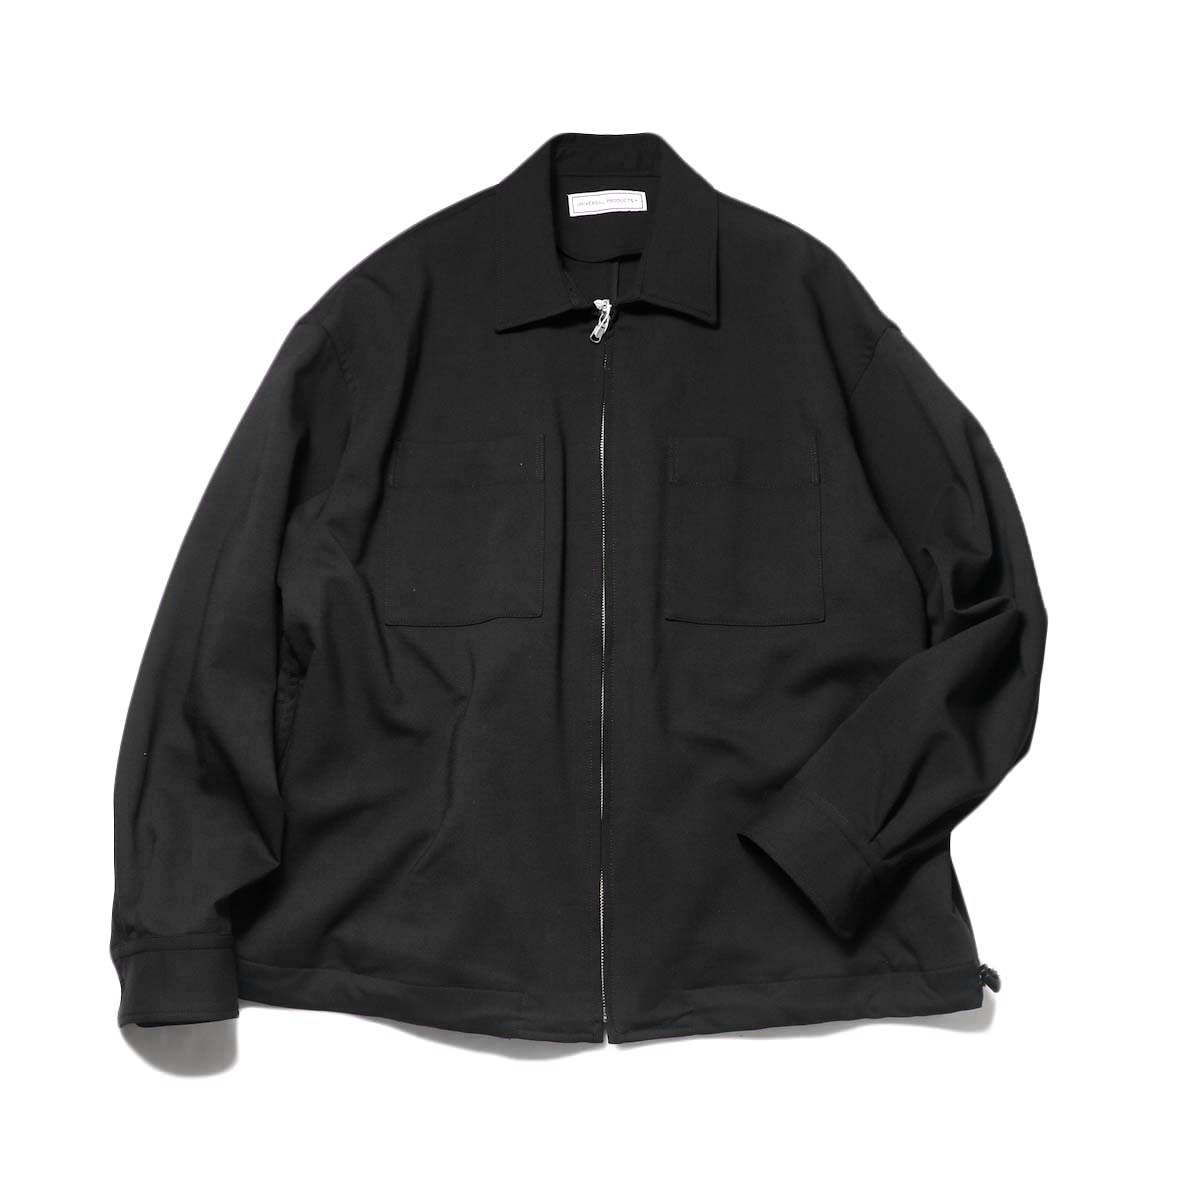 UNIVERSAL PRODUCTS / Double Cloth Zip Front Blouson (Black)